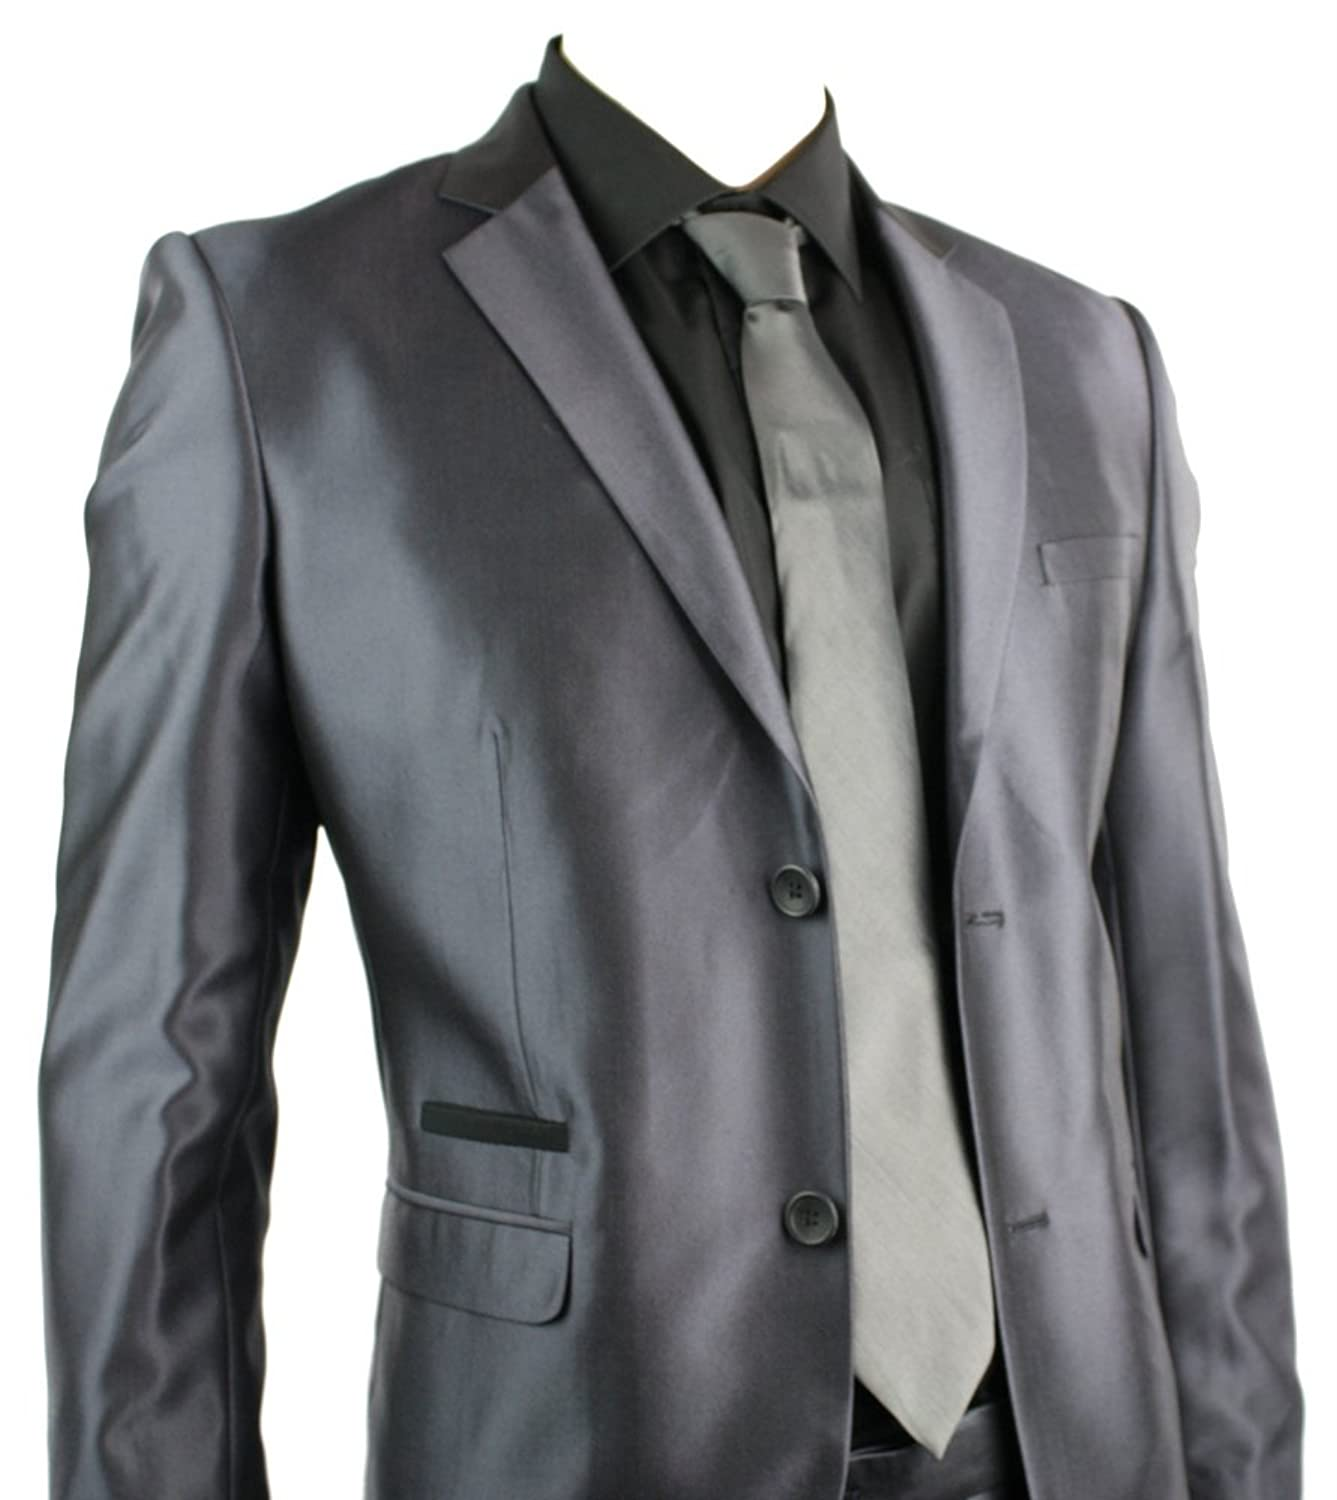 Mens Slim Fit Suit Silver Grey Shiny 2 Button Black Piping Work or ...